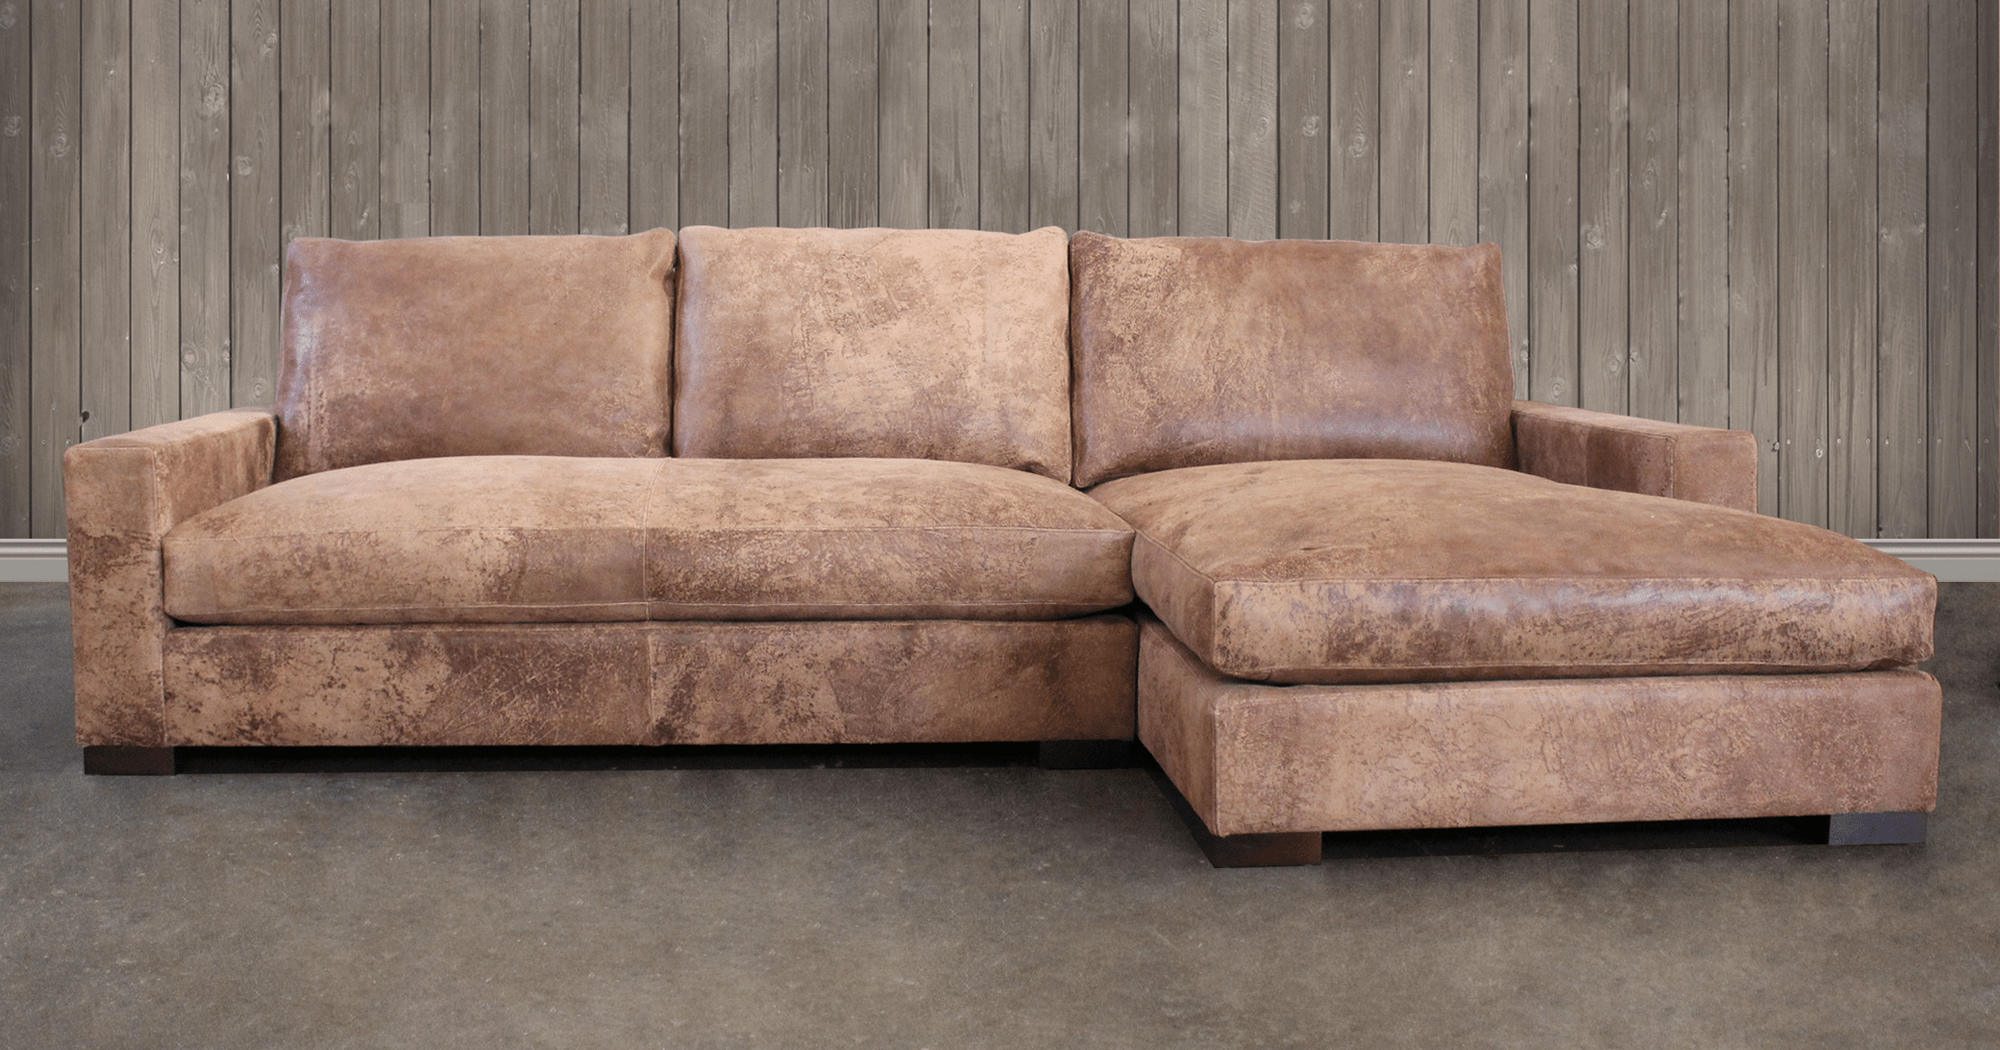 Italian Sofa Chairs Leather Sofa Made In Italy Amazing Italian Leather Sofa